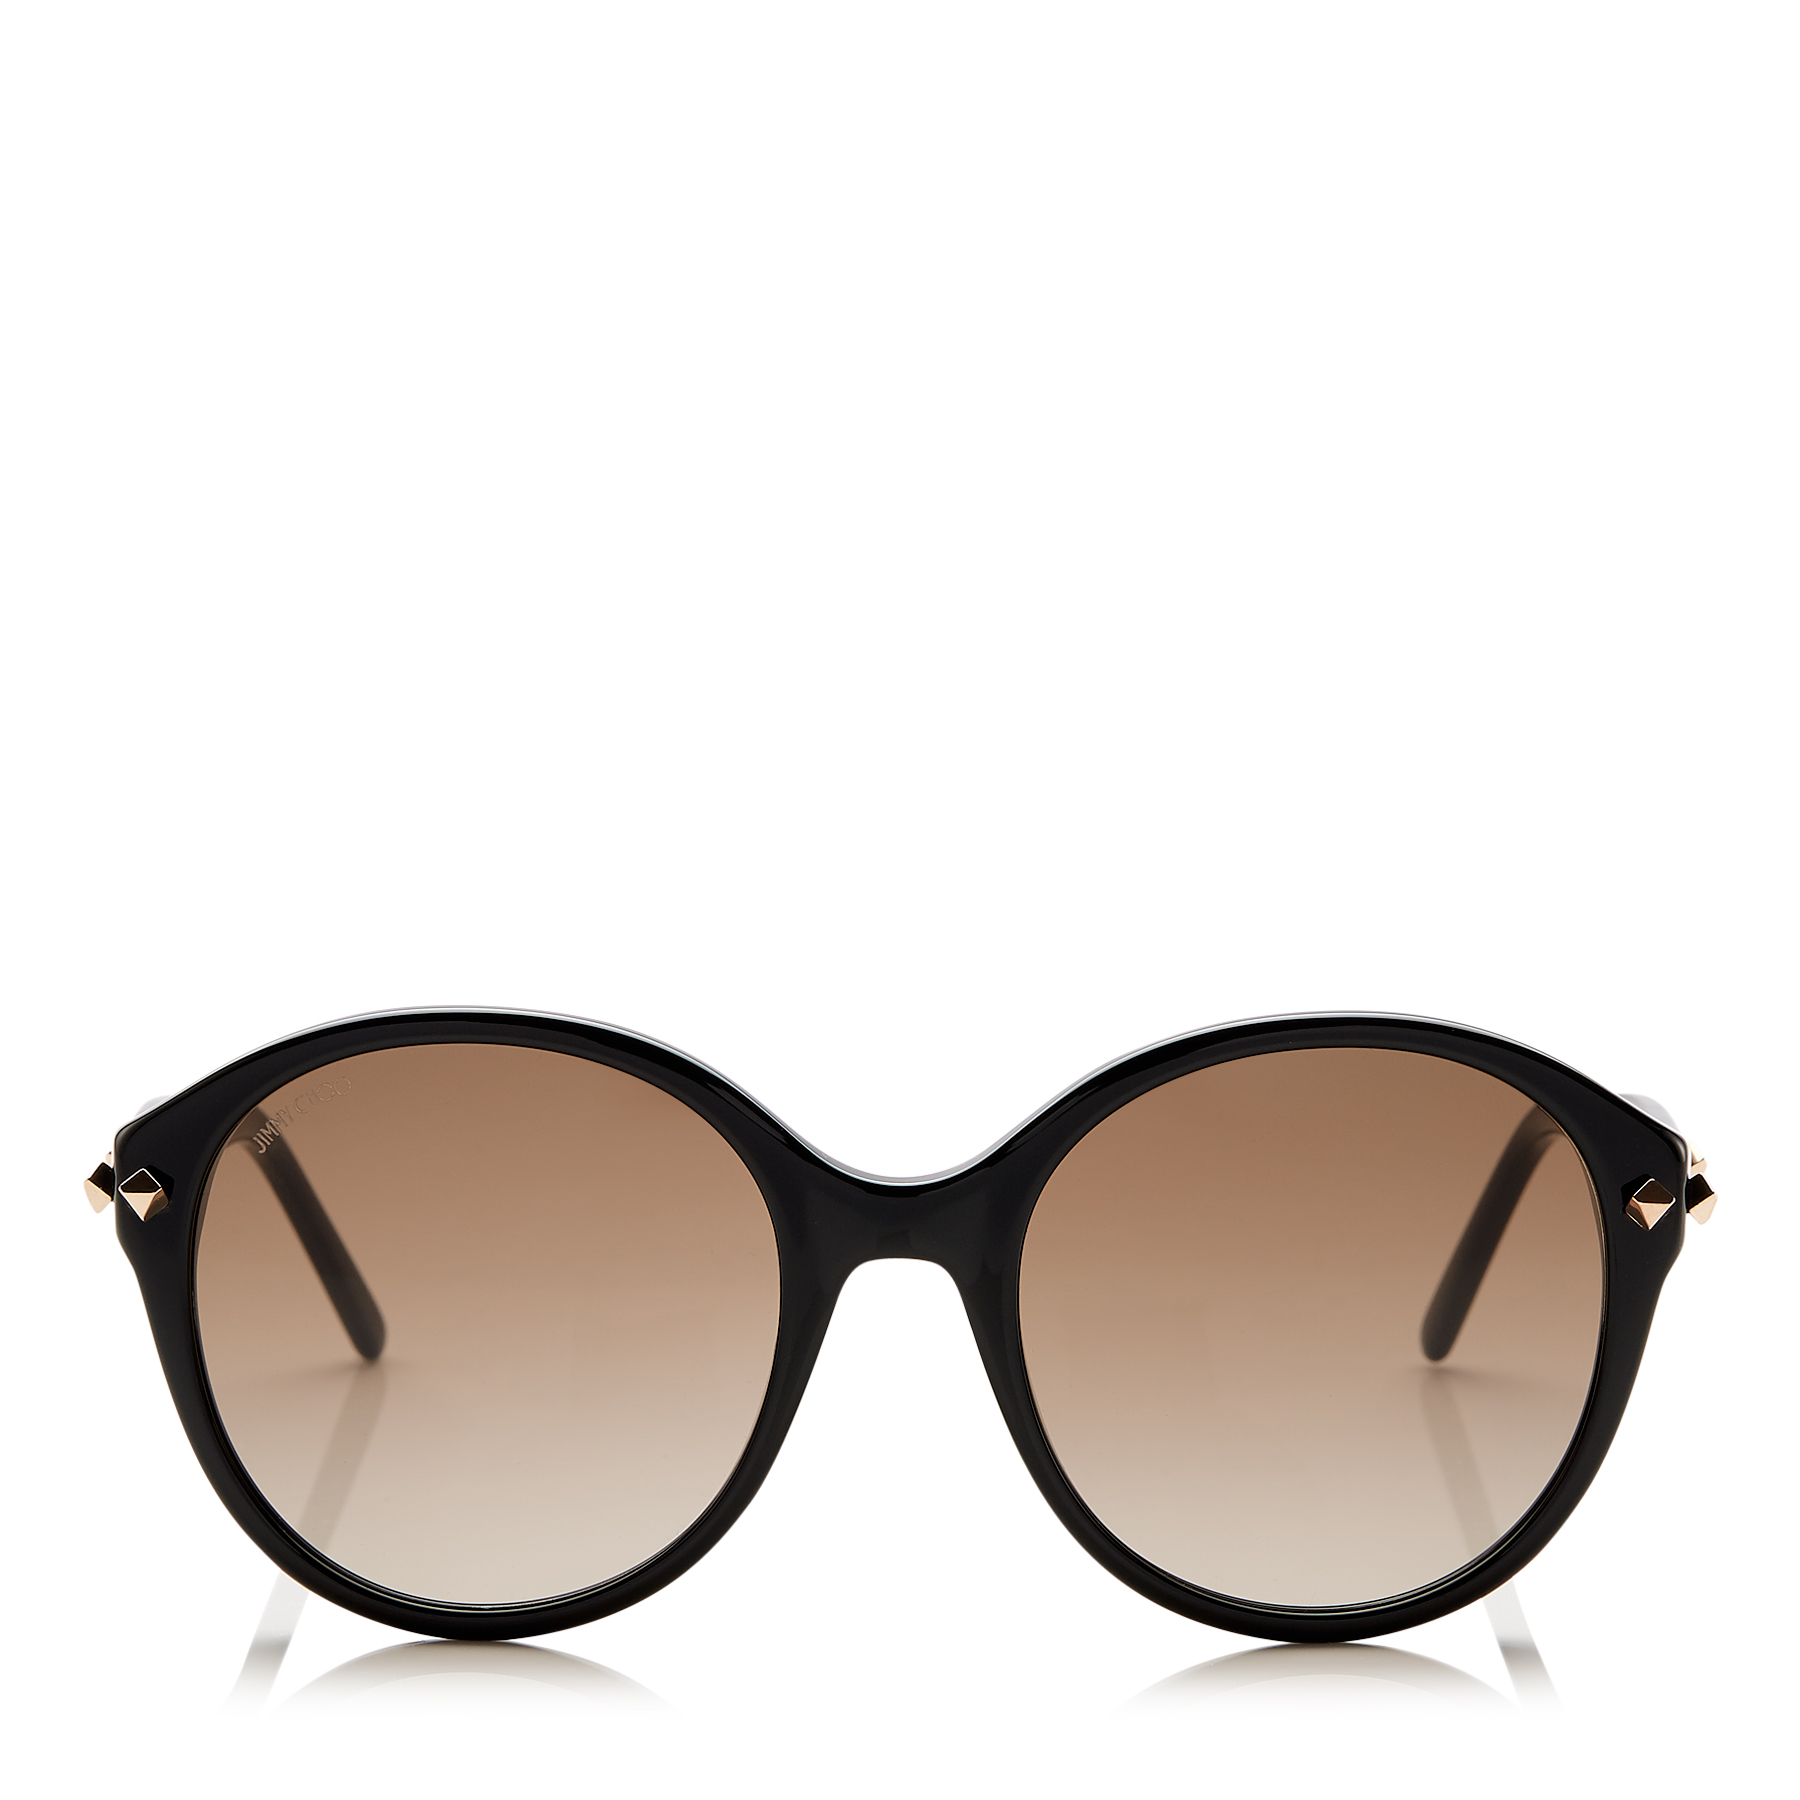 MORE/S Black Acetate Sunglasses with Stud Detail